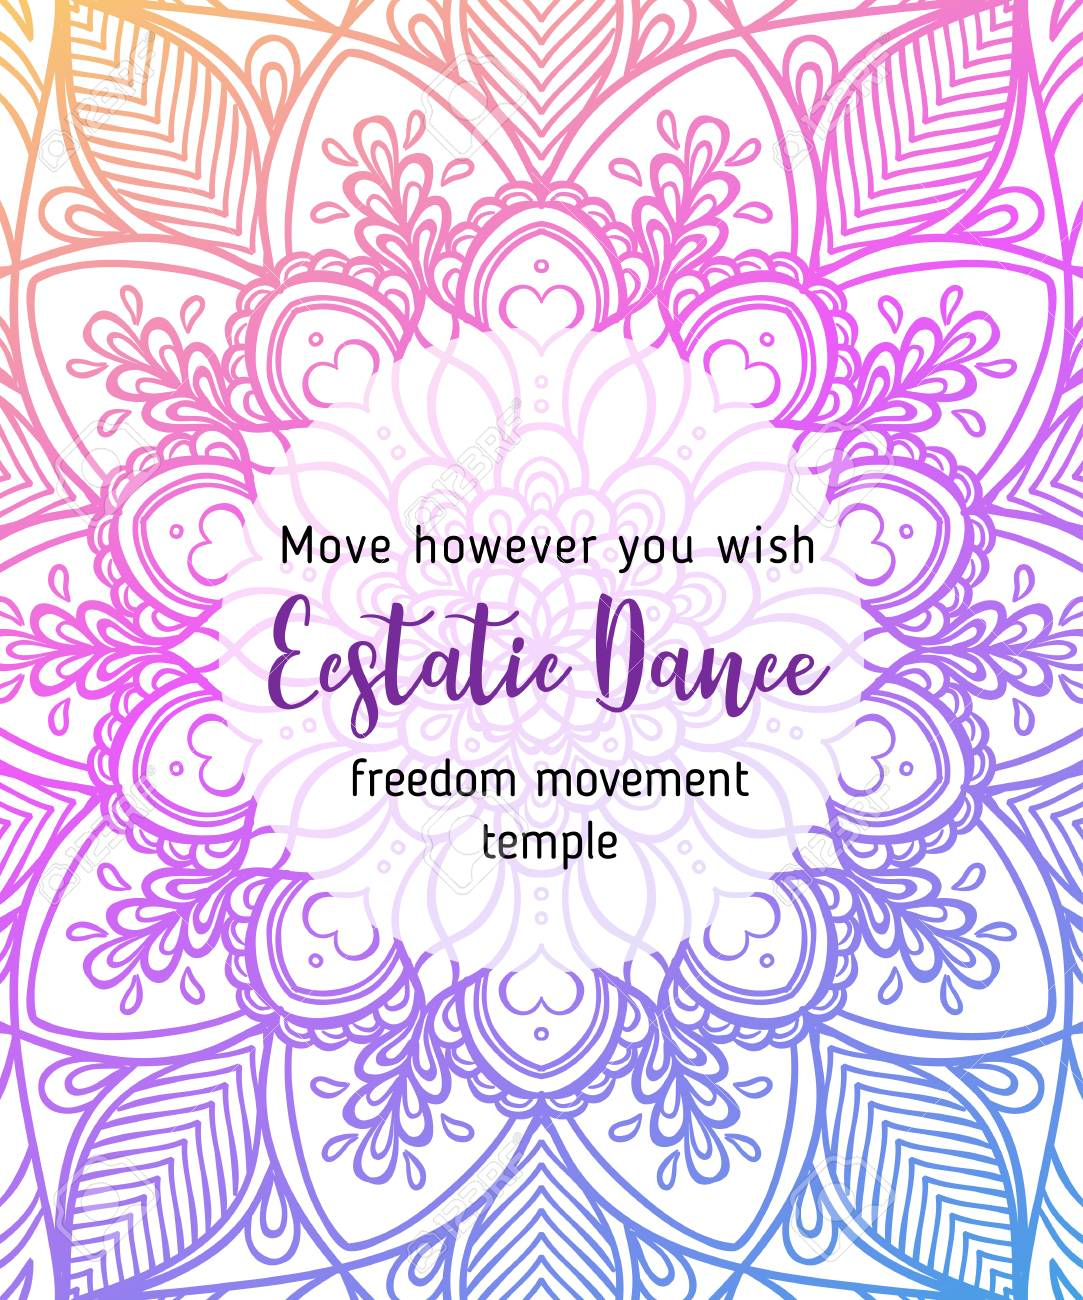 Ecstatic Dance Yoga Card Design, Colorful Template For Spiritual ...